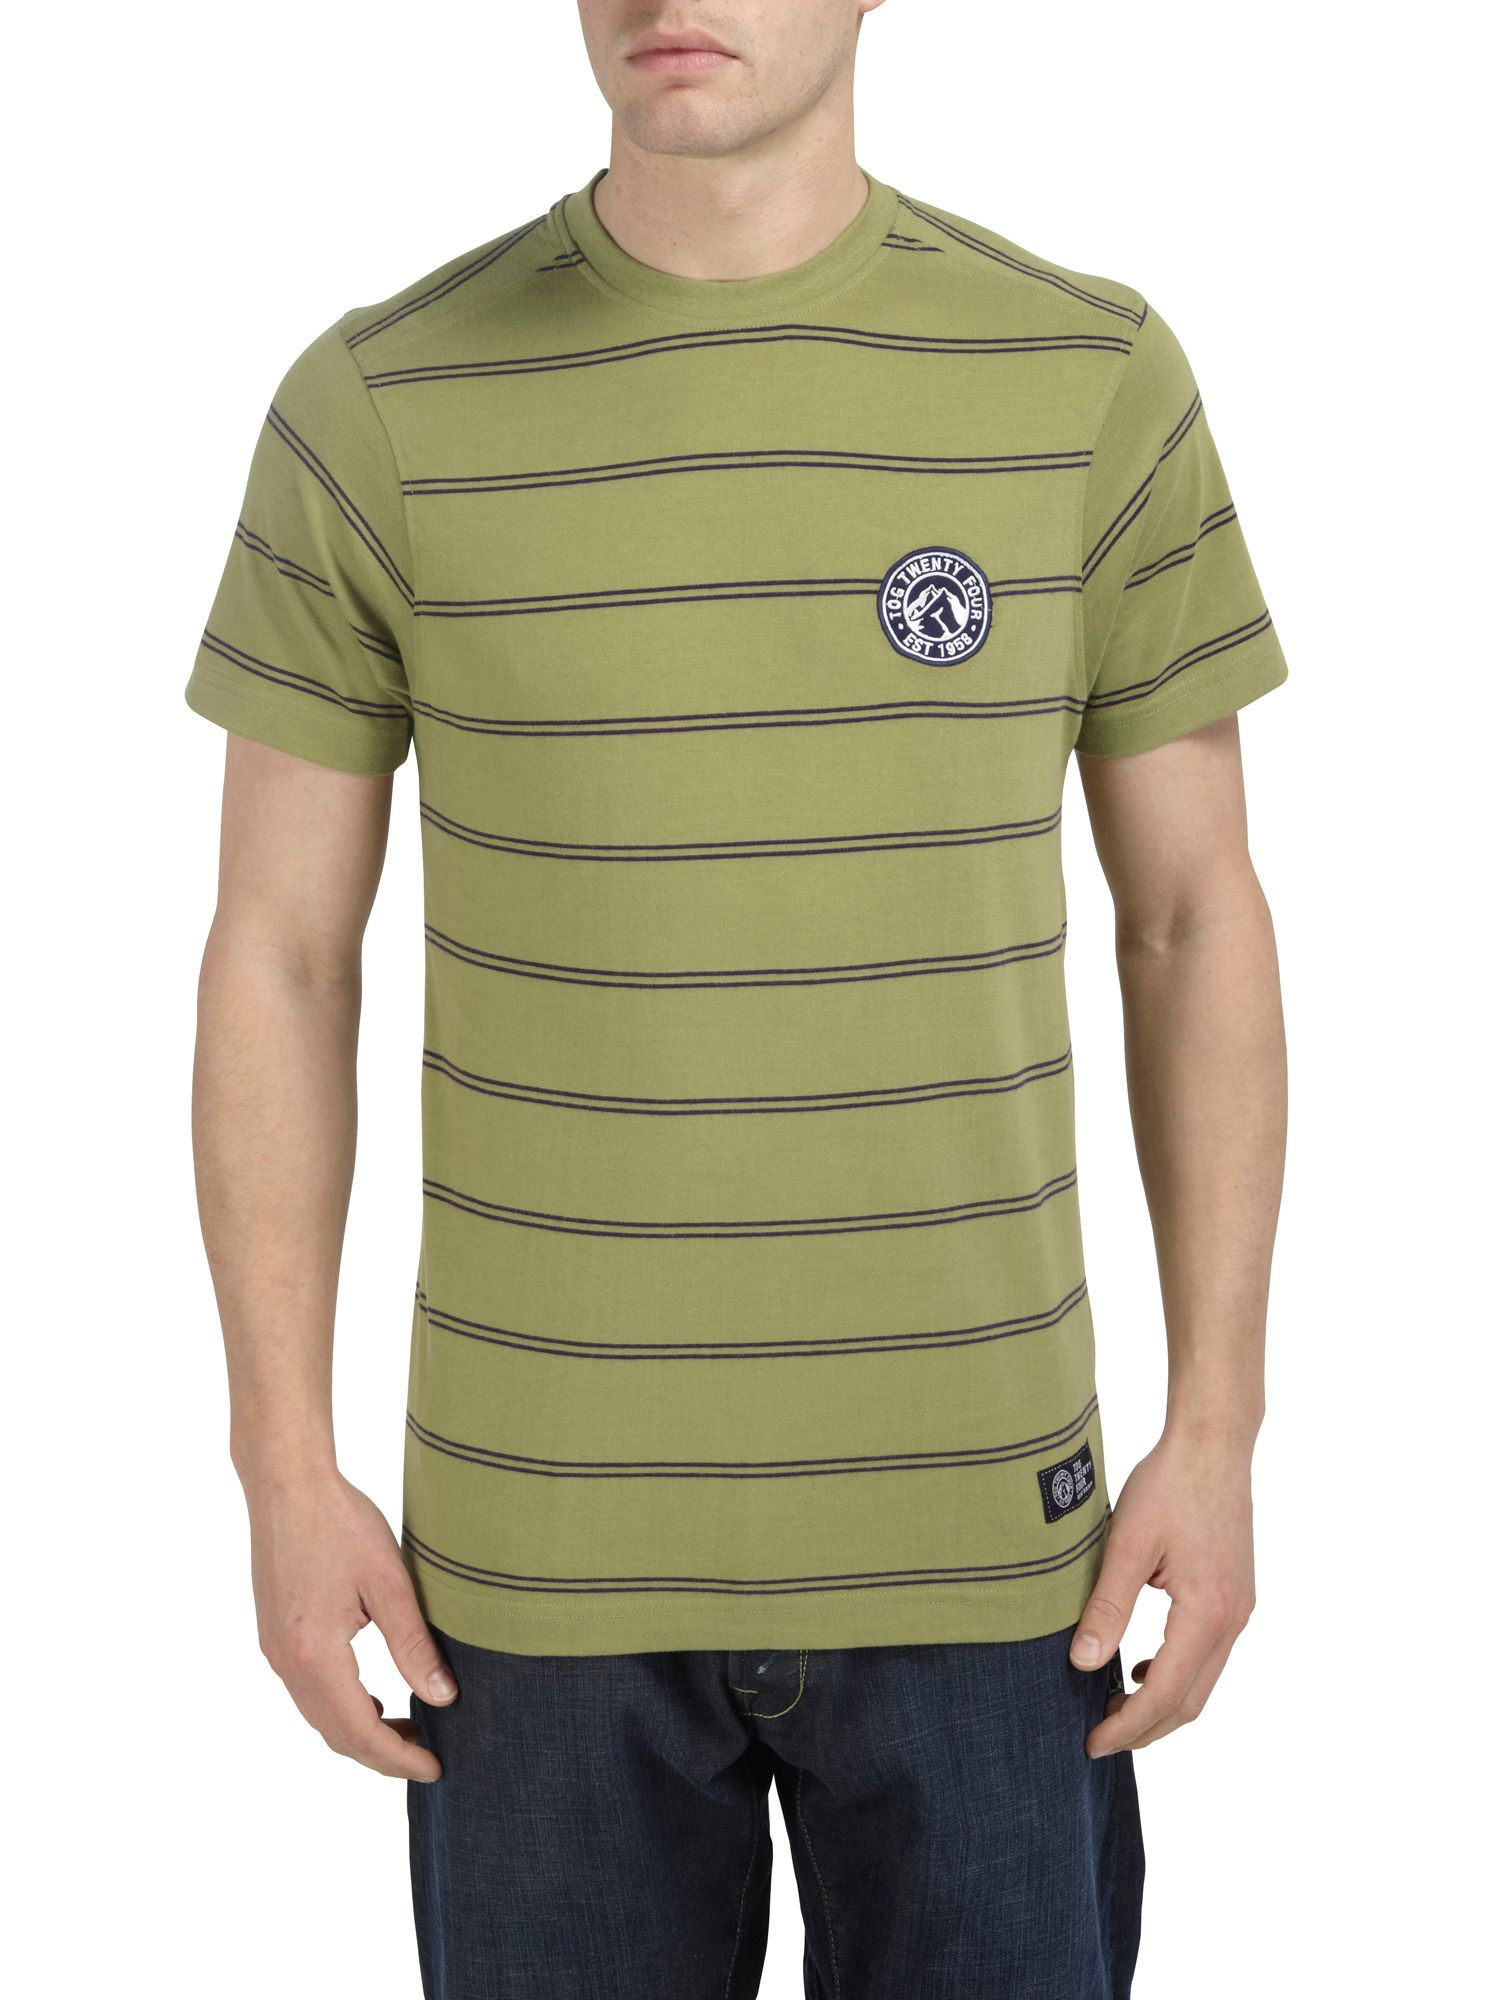 Mars stripe short sleeve t-shirt